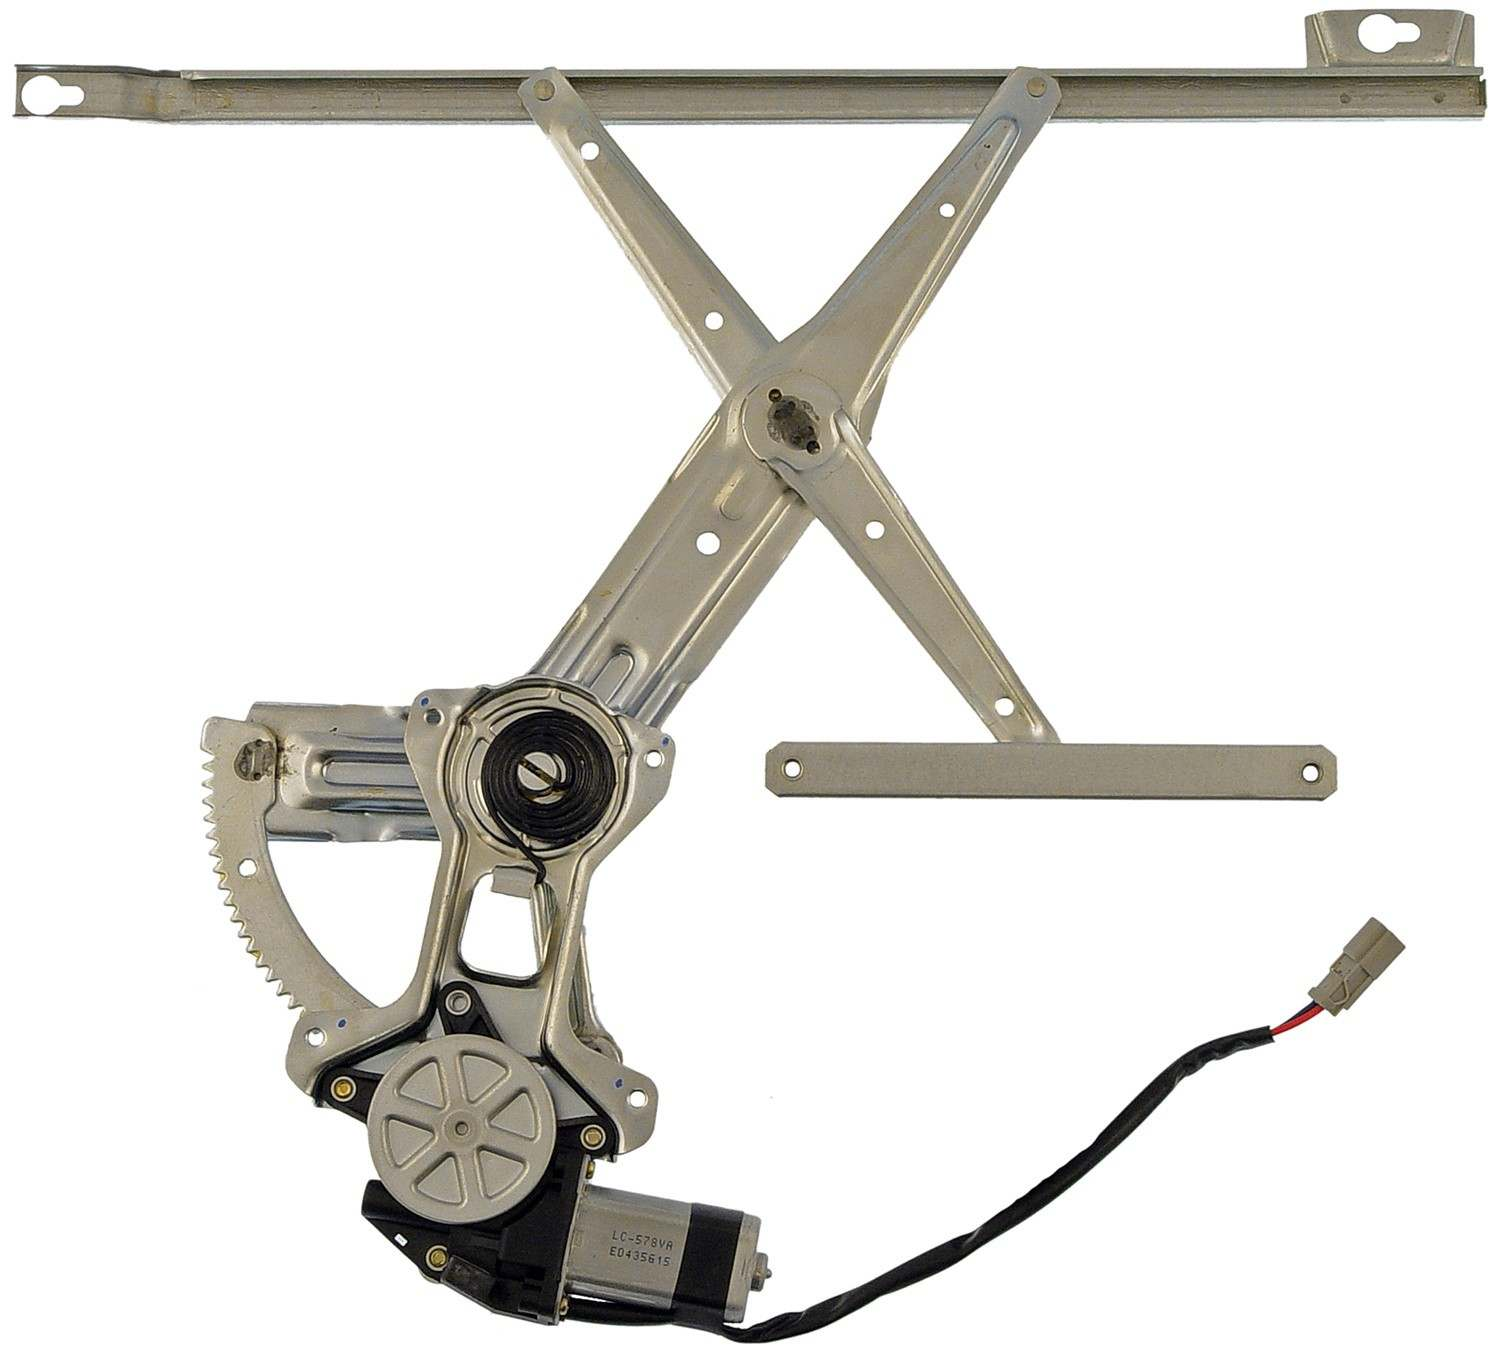 DORMAN OE SOLUTIONS - Power Window Motor And Regulator Assembly (Front Right) - DRE 741-716